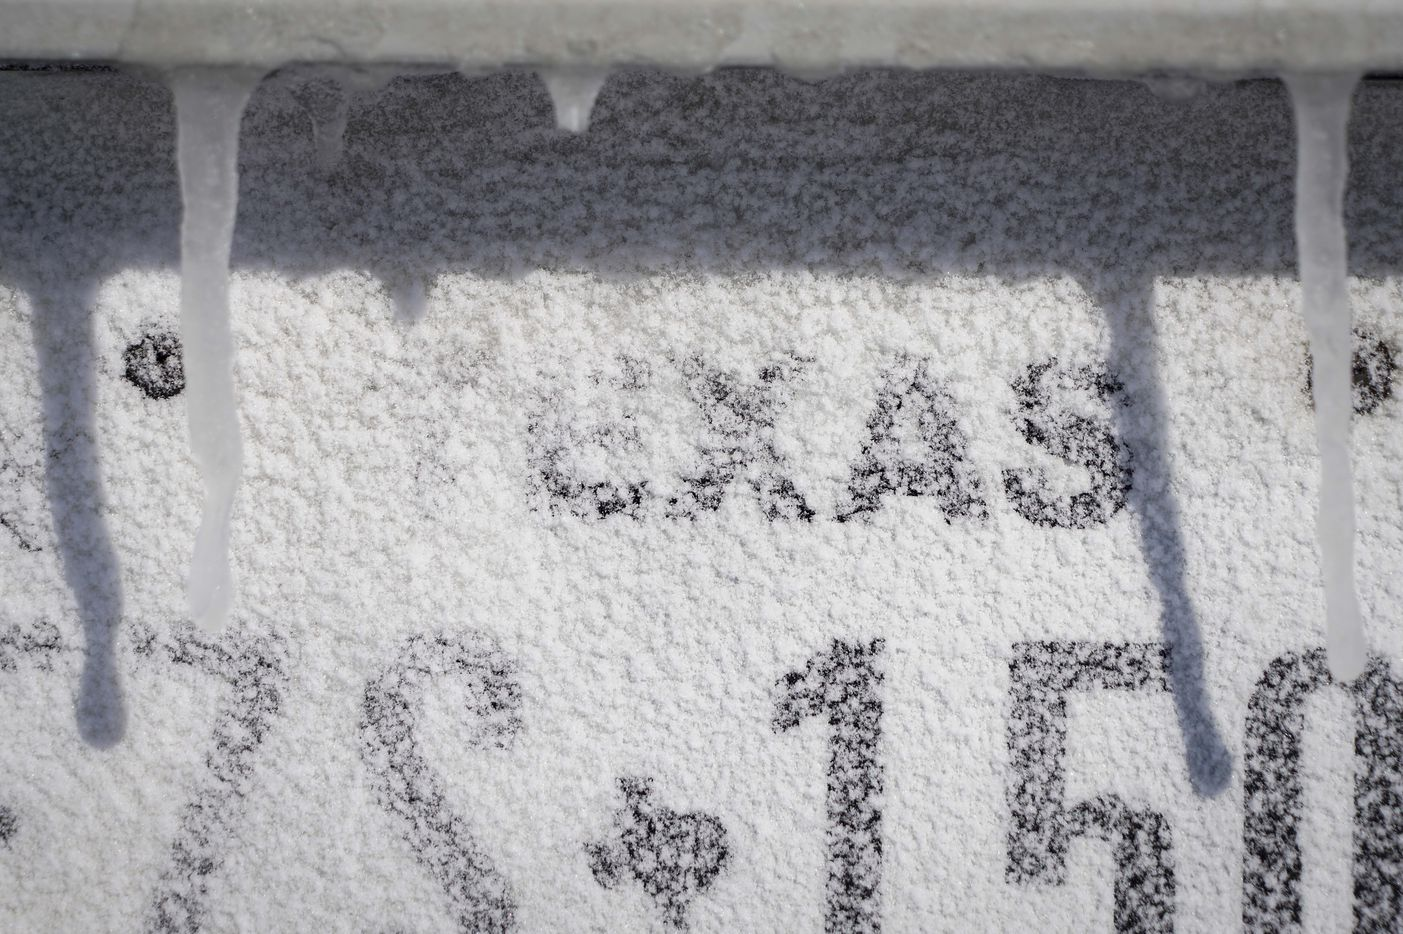 Icicles hang over a Texas license plate on a car after winter storm brought snow and freezing temperatures to North Texas on Monday, Feb. 15, 2021, in Richardson.  (Smiley N. Pool/The Dallas Morning News)